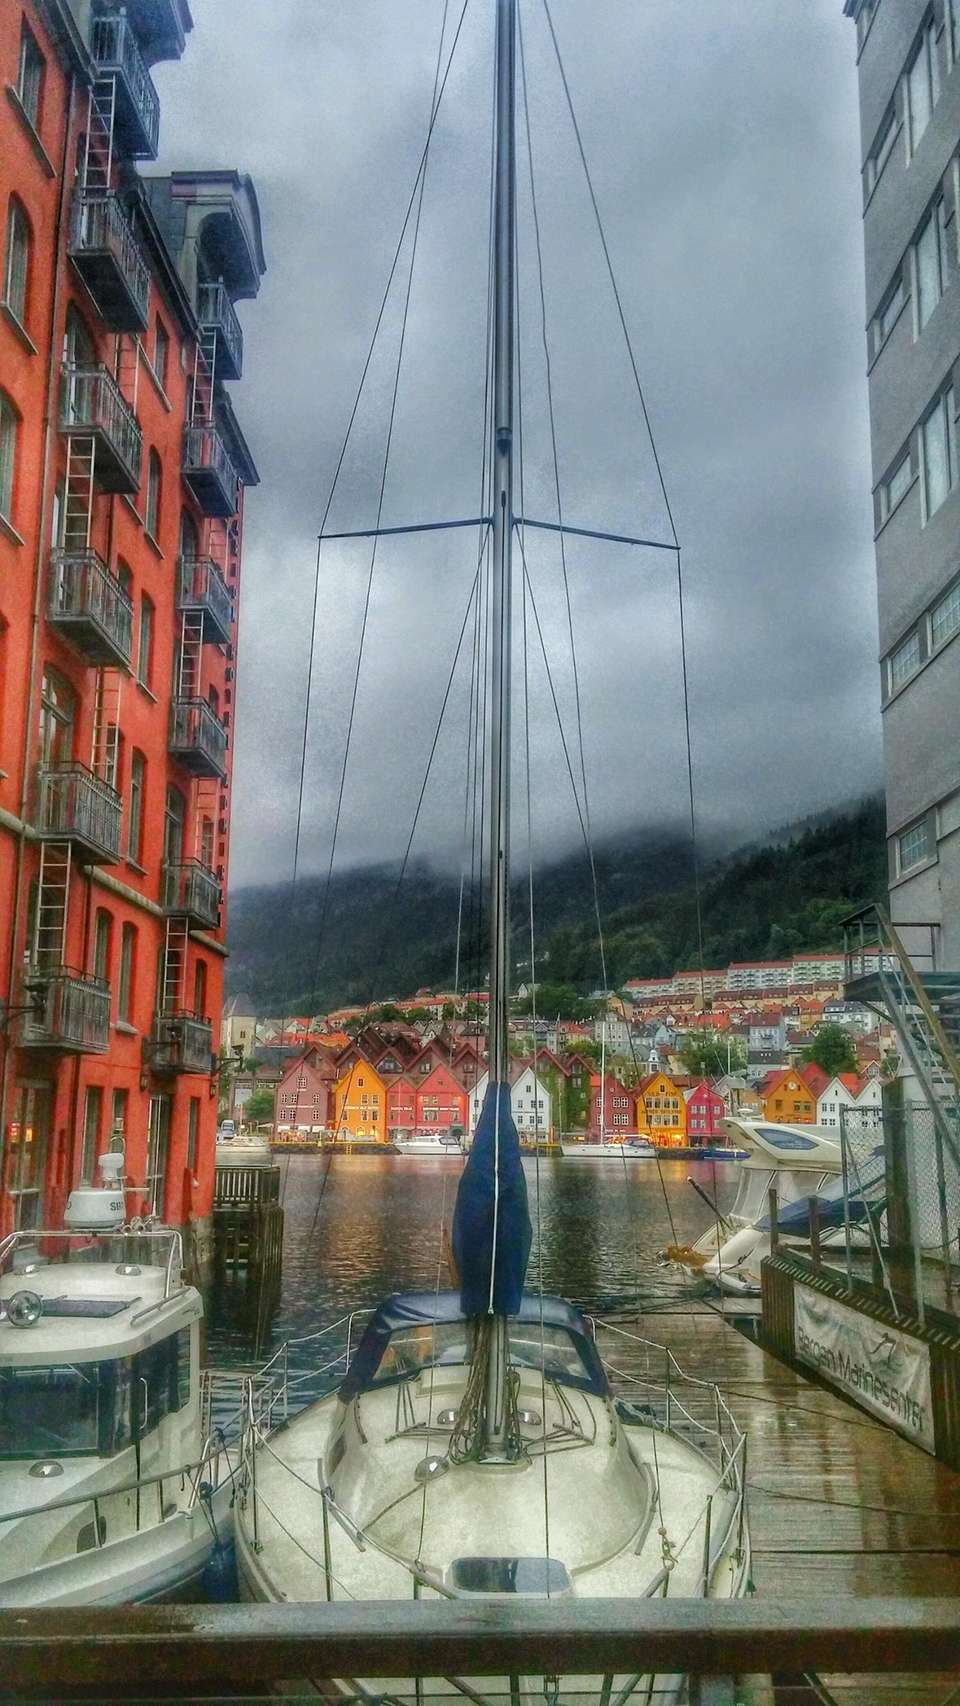 My husbaand and I were touring Bergen, this